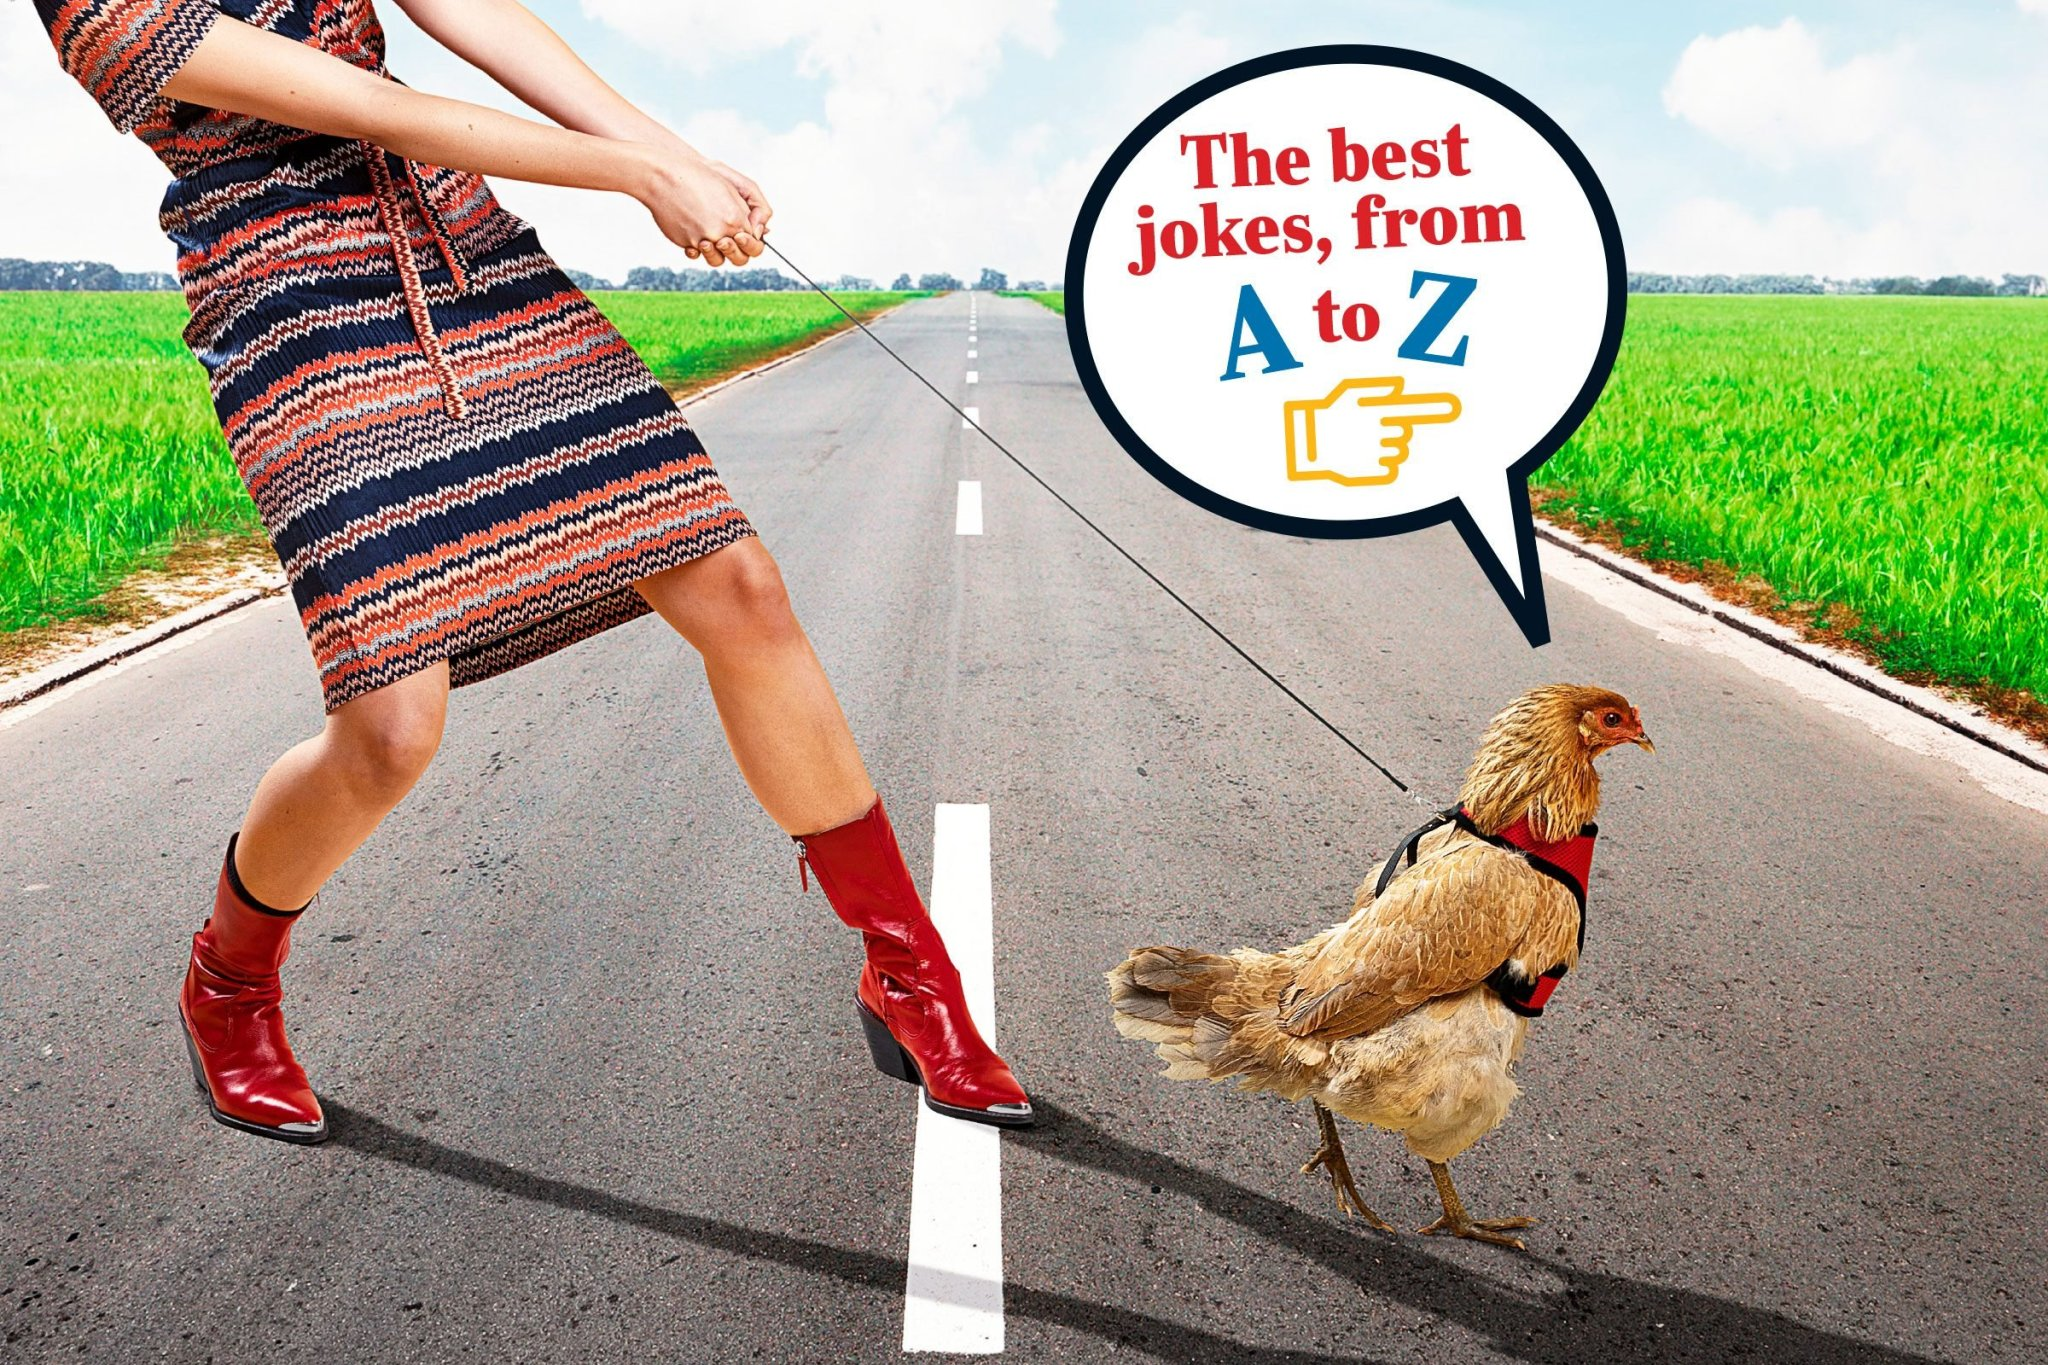 The Best Jokes, from A to Z